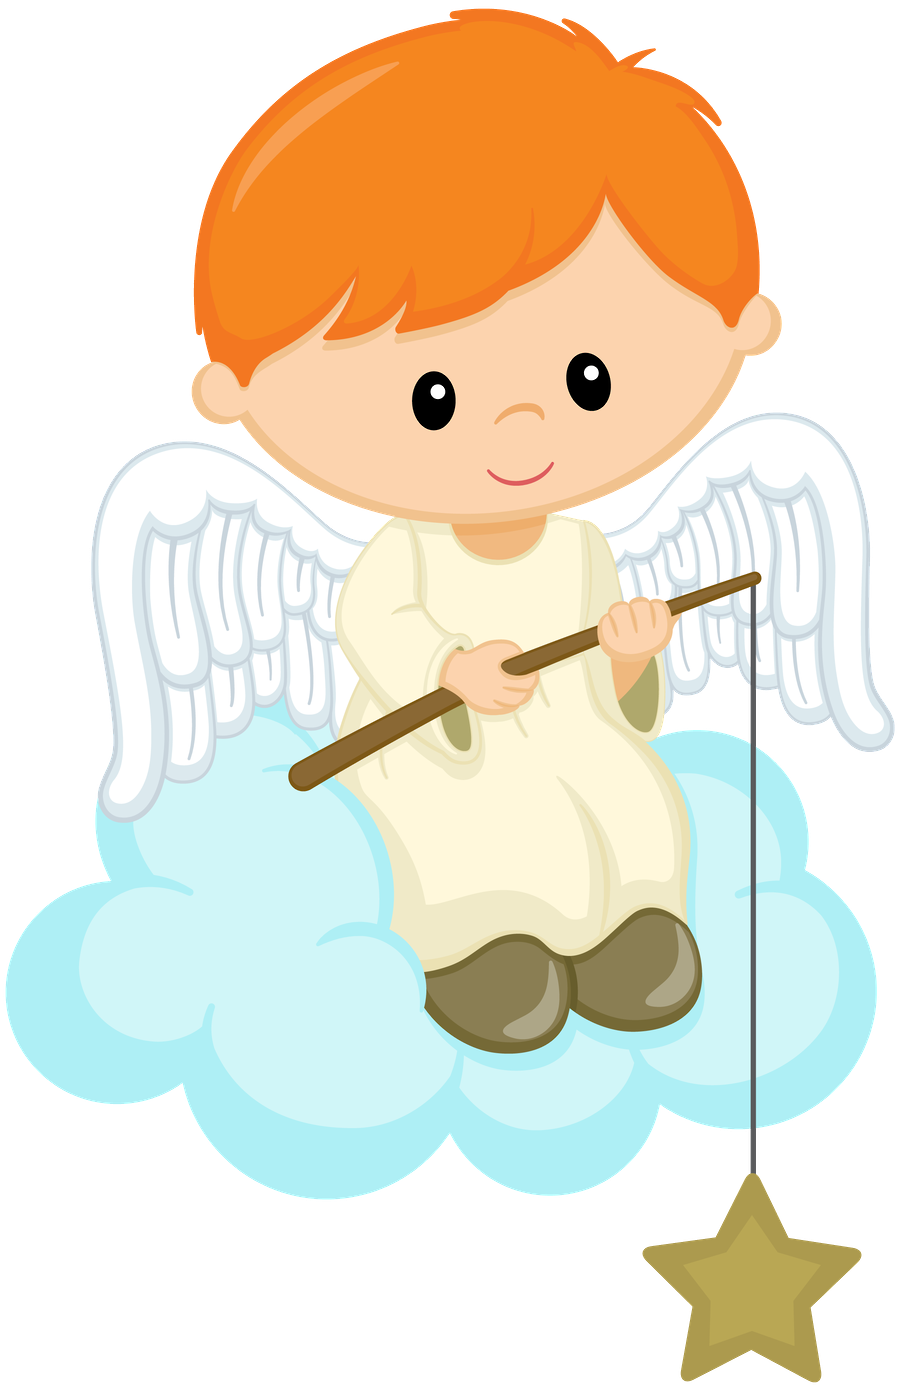 Clipart angel happy birthday. Pin by jeny chique